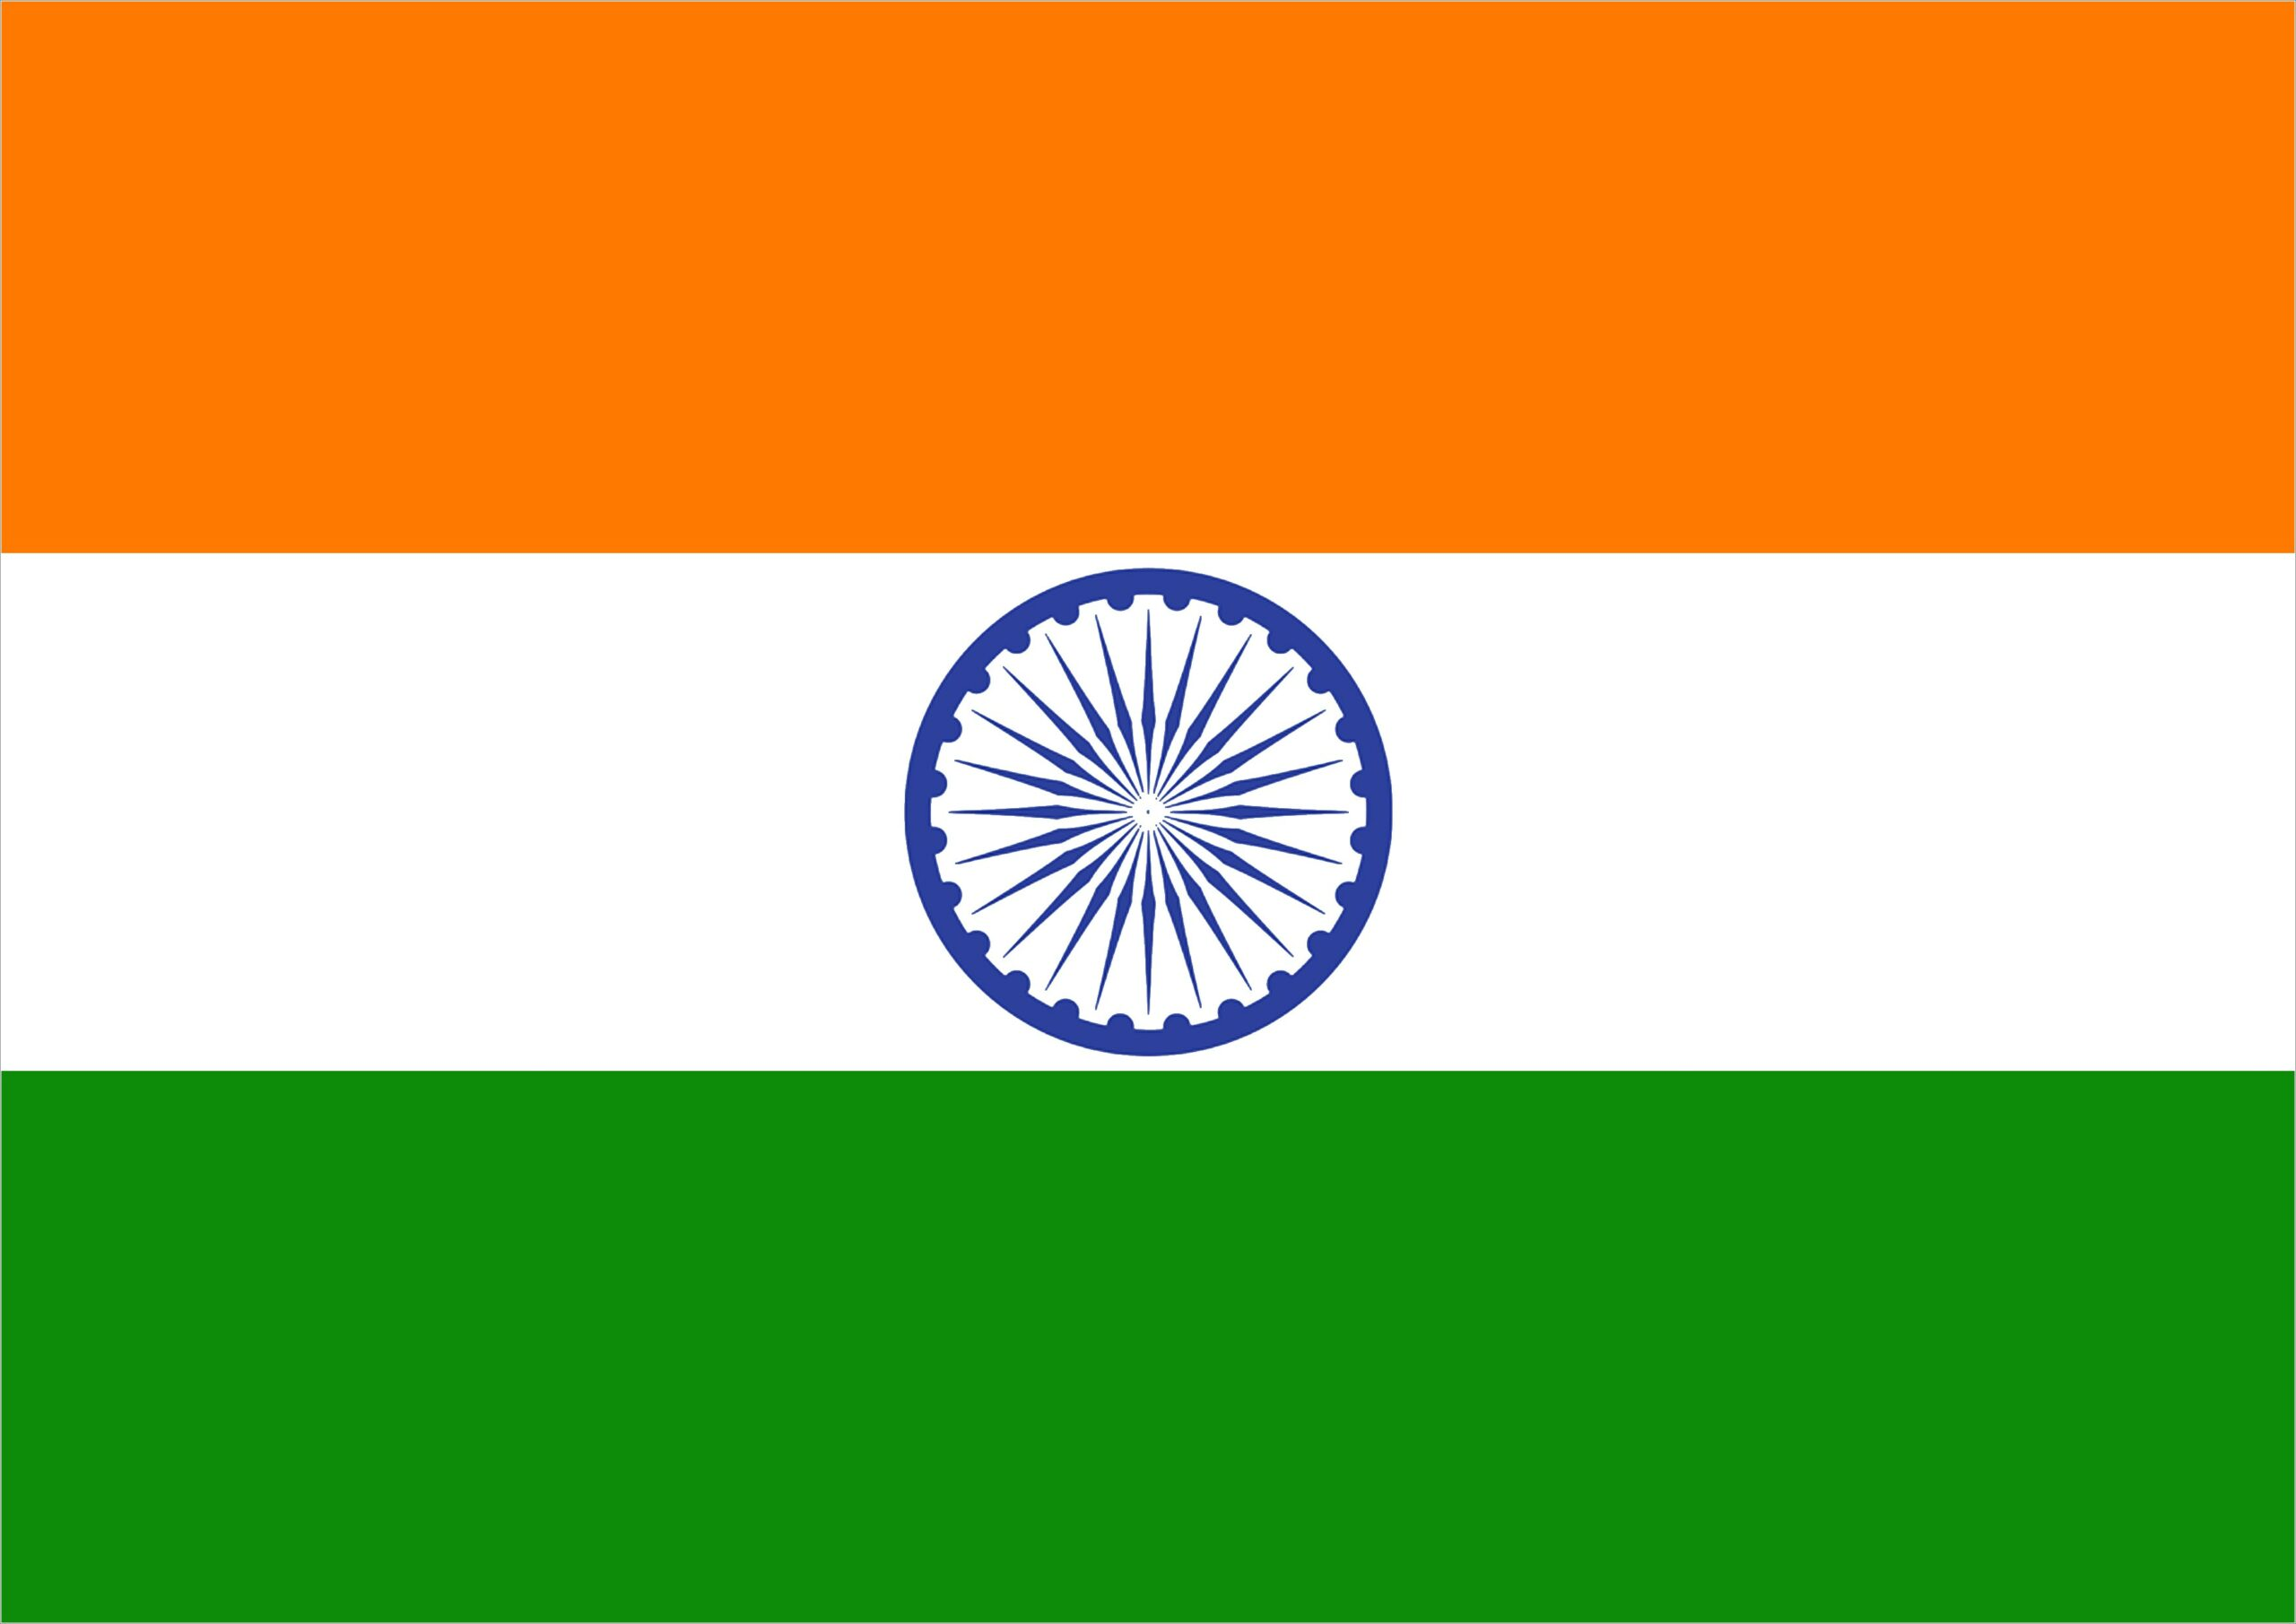 T Letter Images In Indian Flag